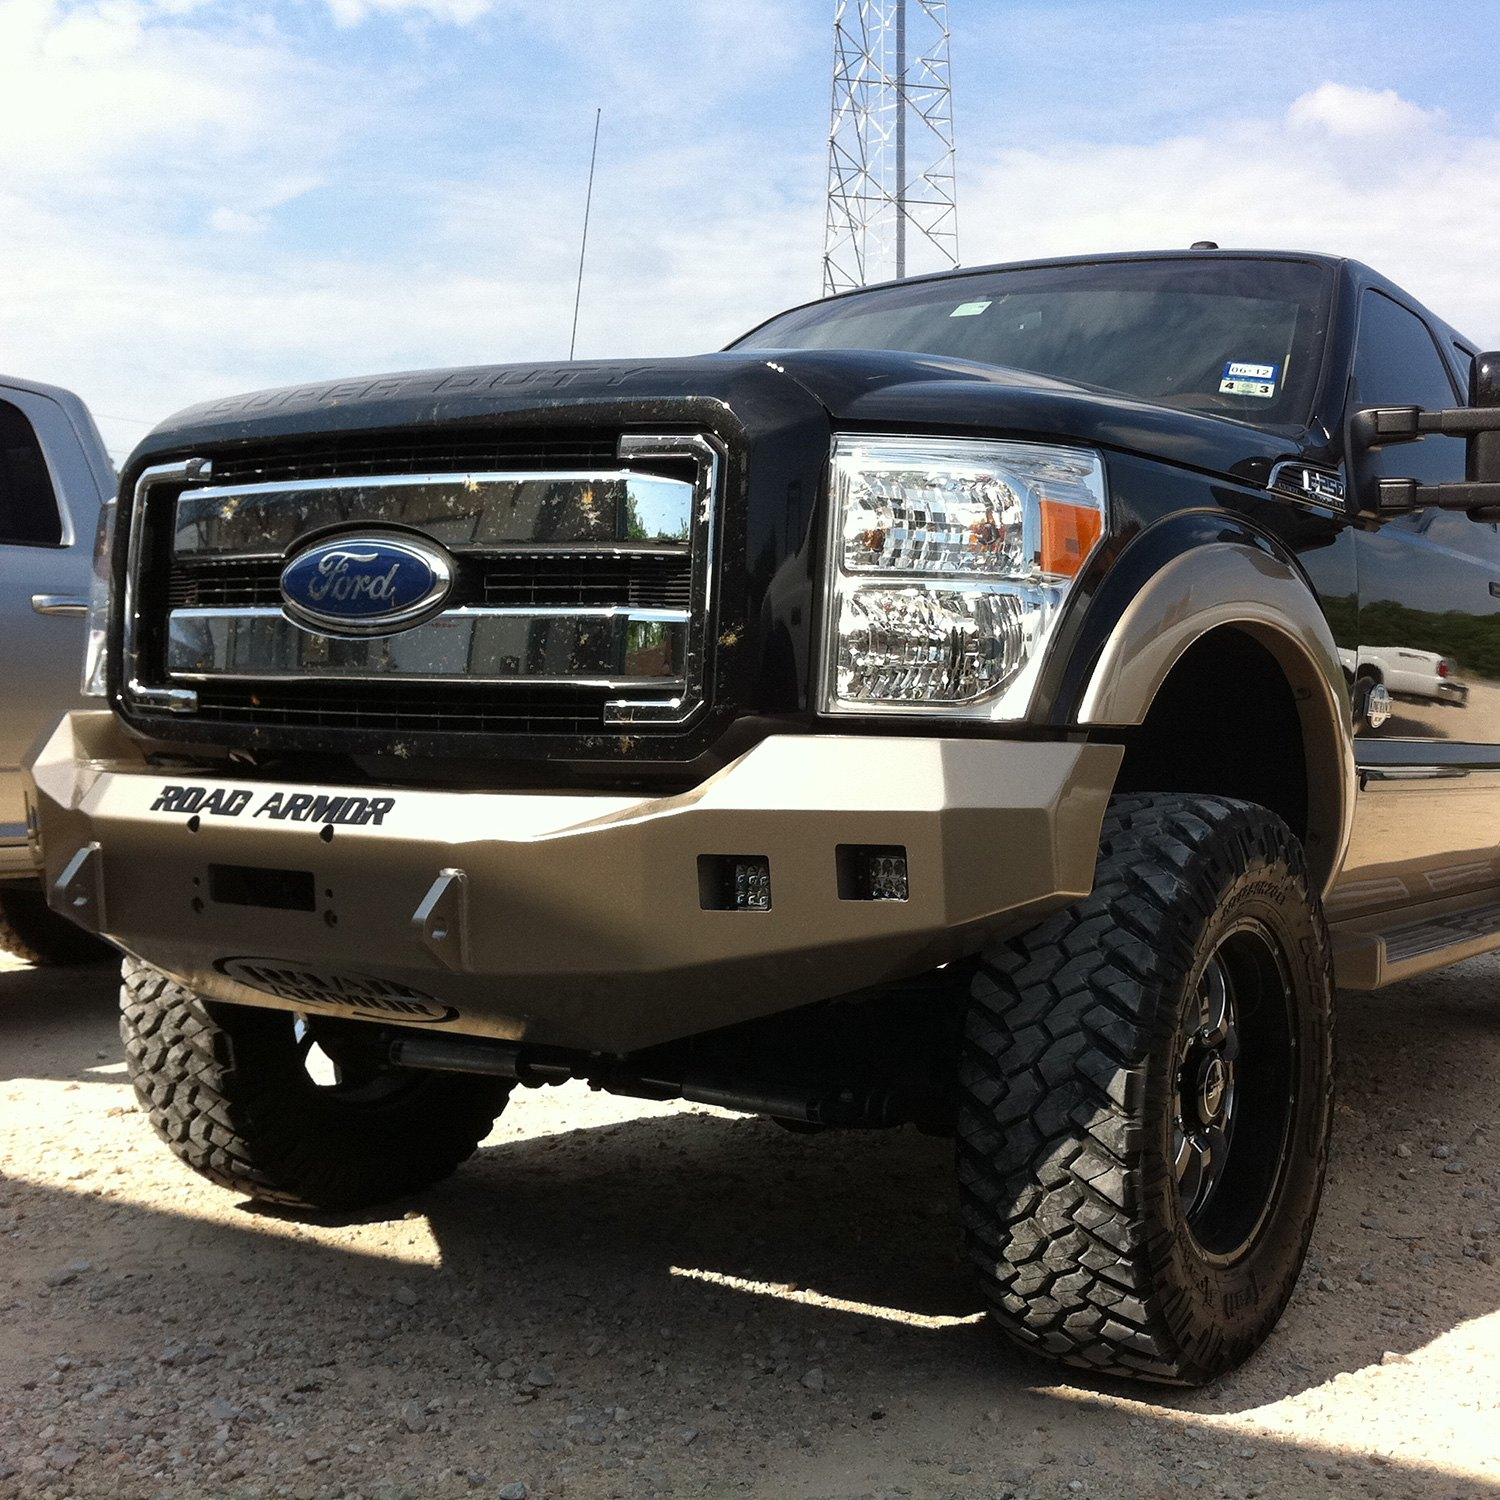 Ford Tractor 800 Series Front Bumper : Road armor ford f stealth series full